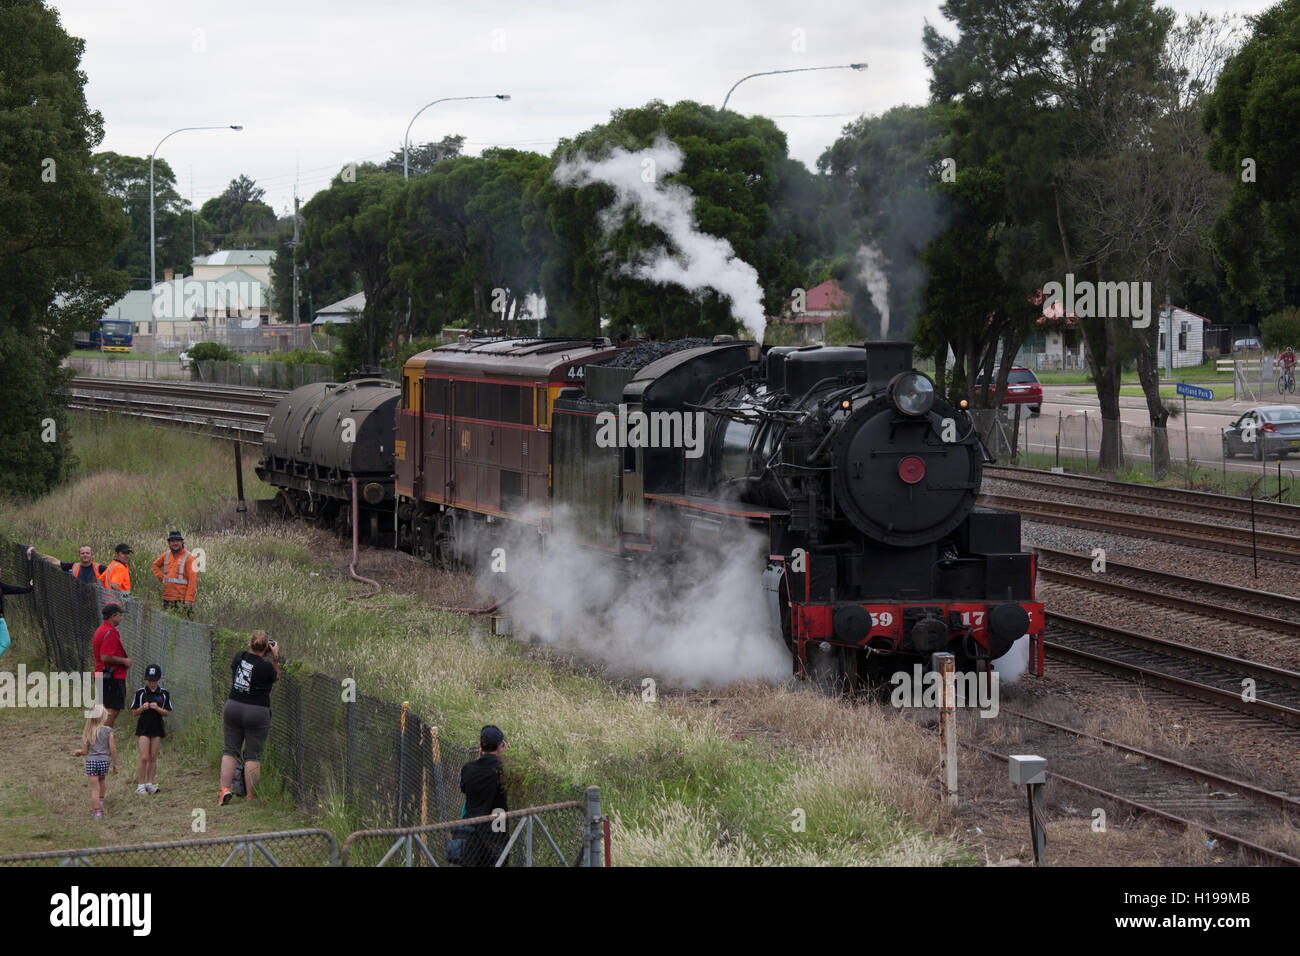 Railway Steam Locomotives on display at Maitland NSW Australia Stock Photo